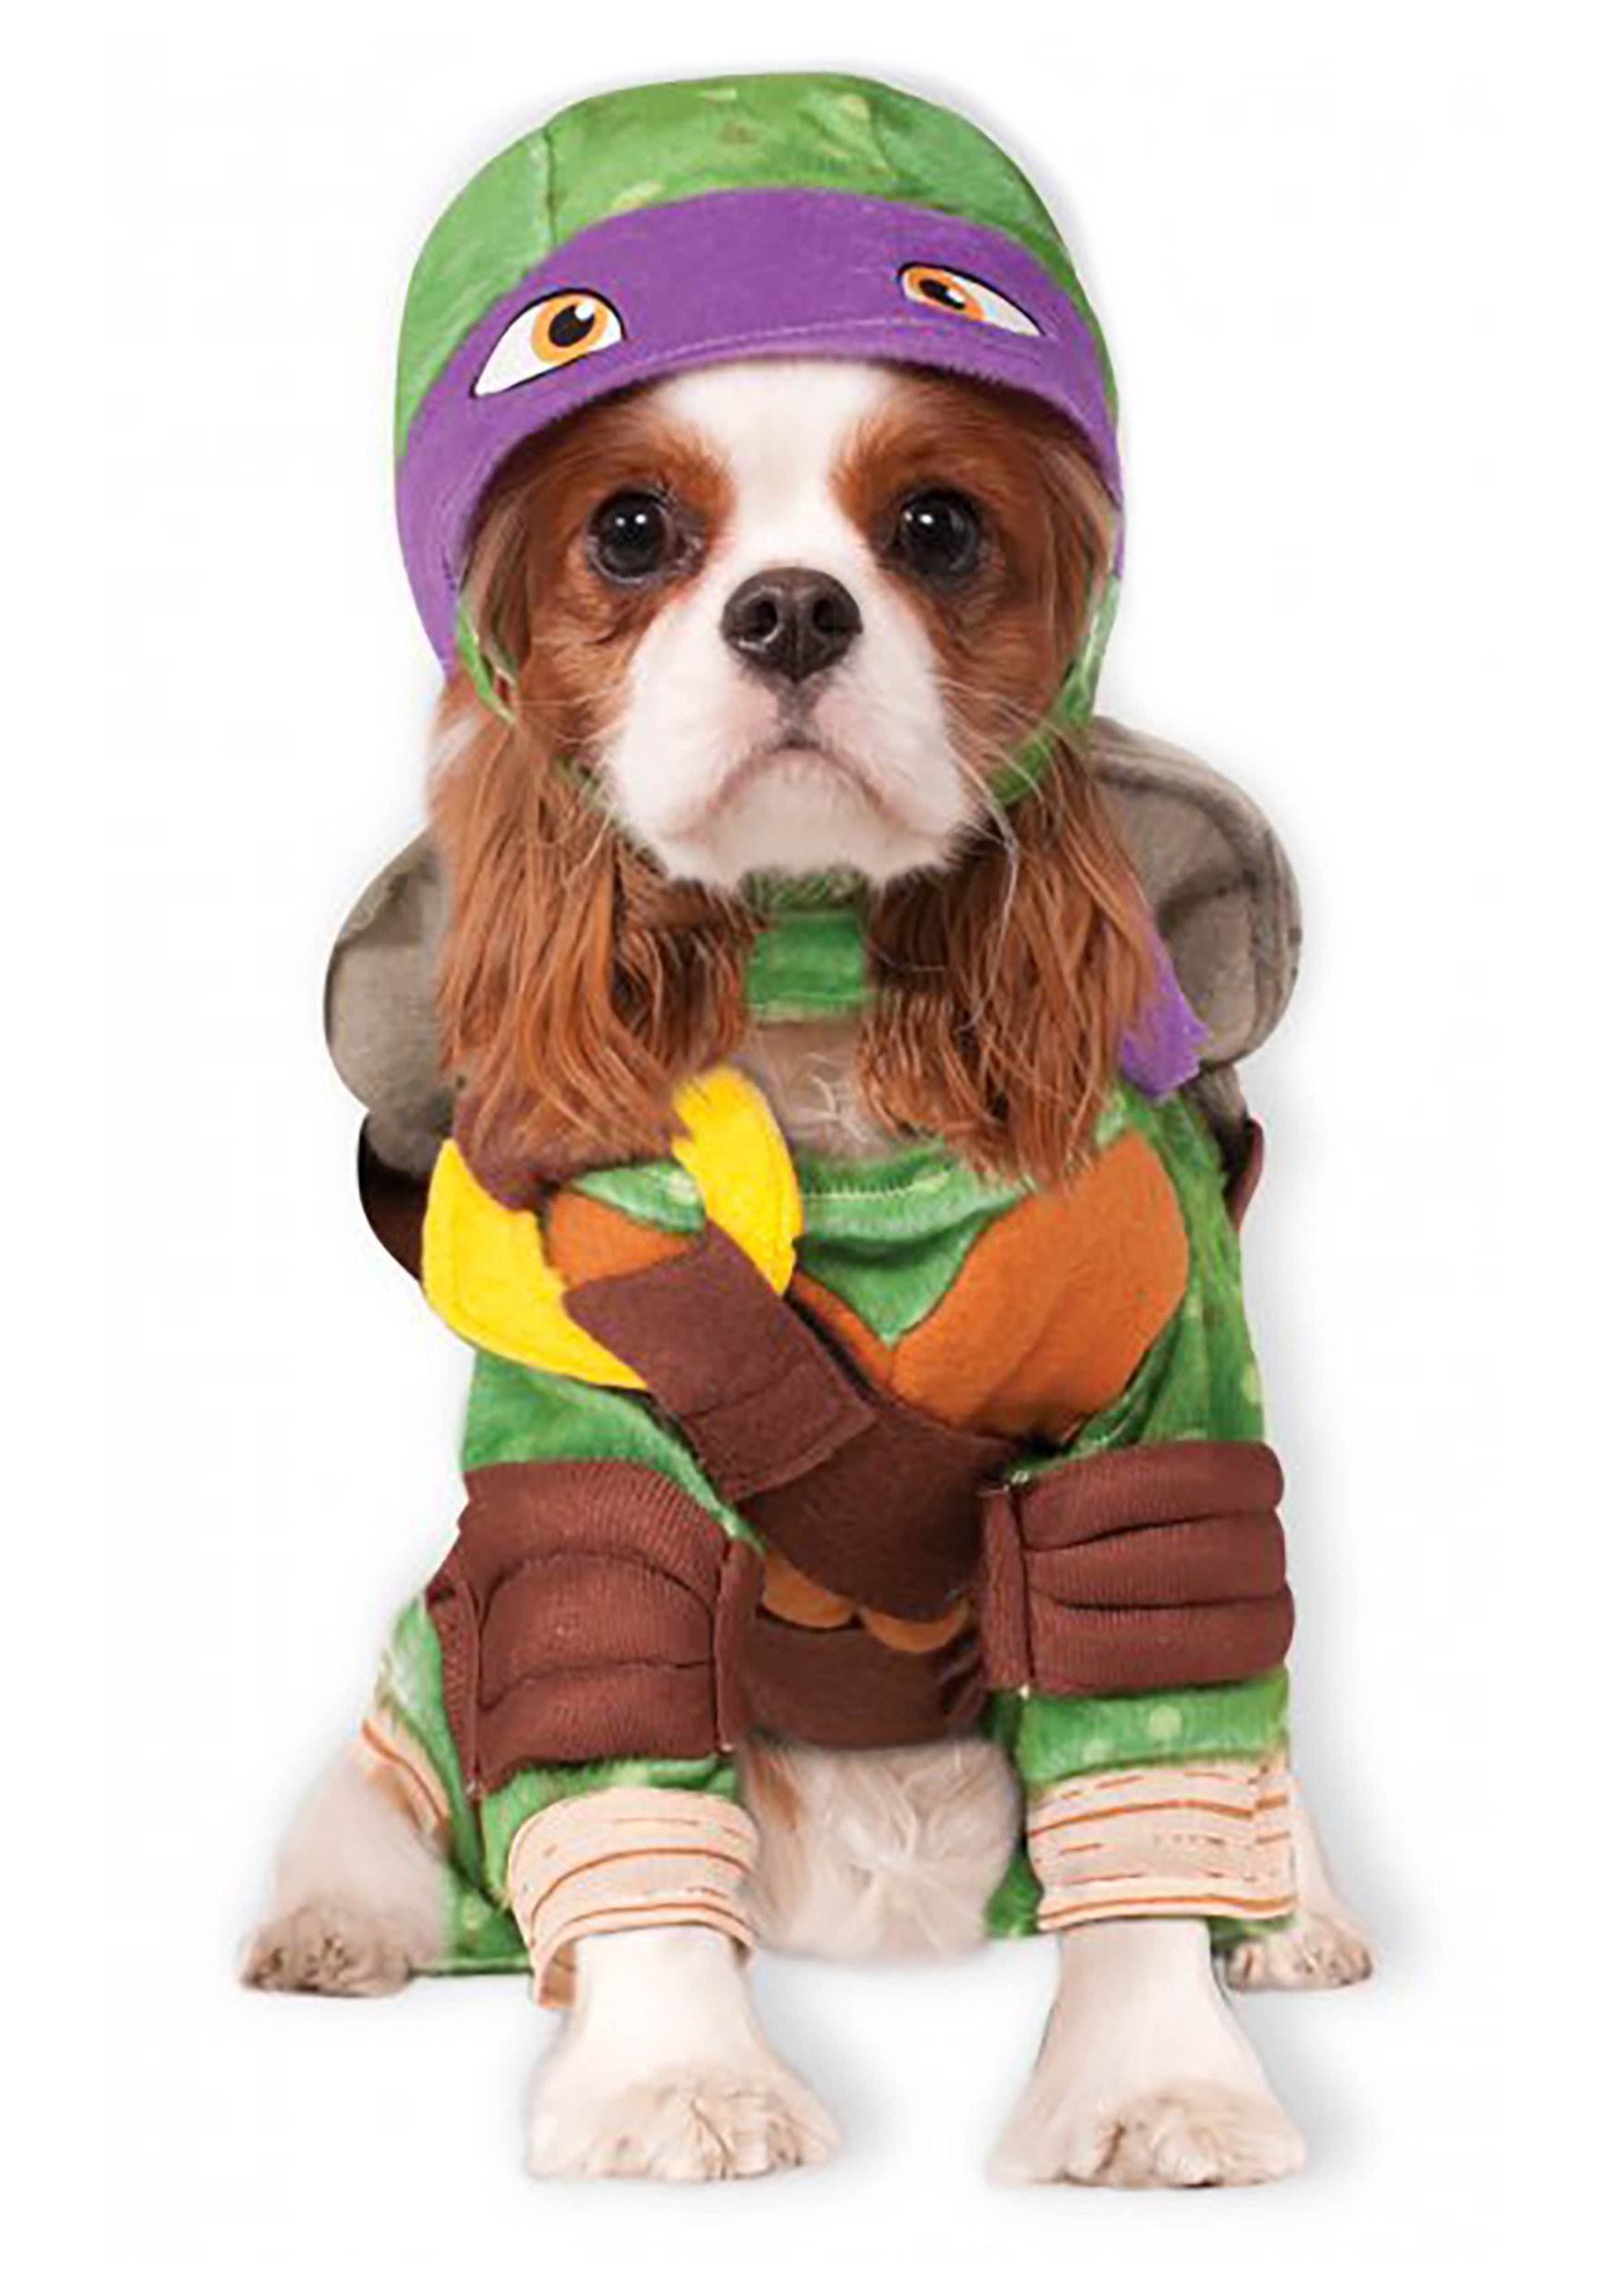 TMNT Donatello Pet Costume